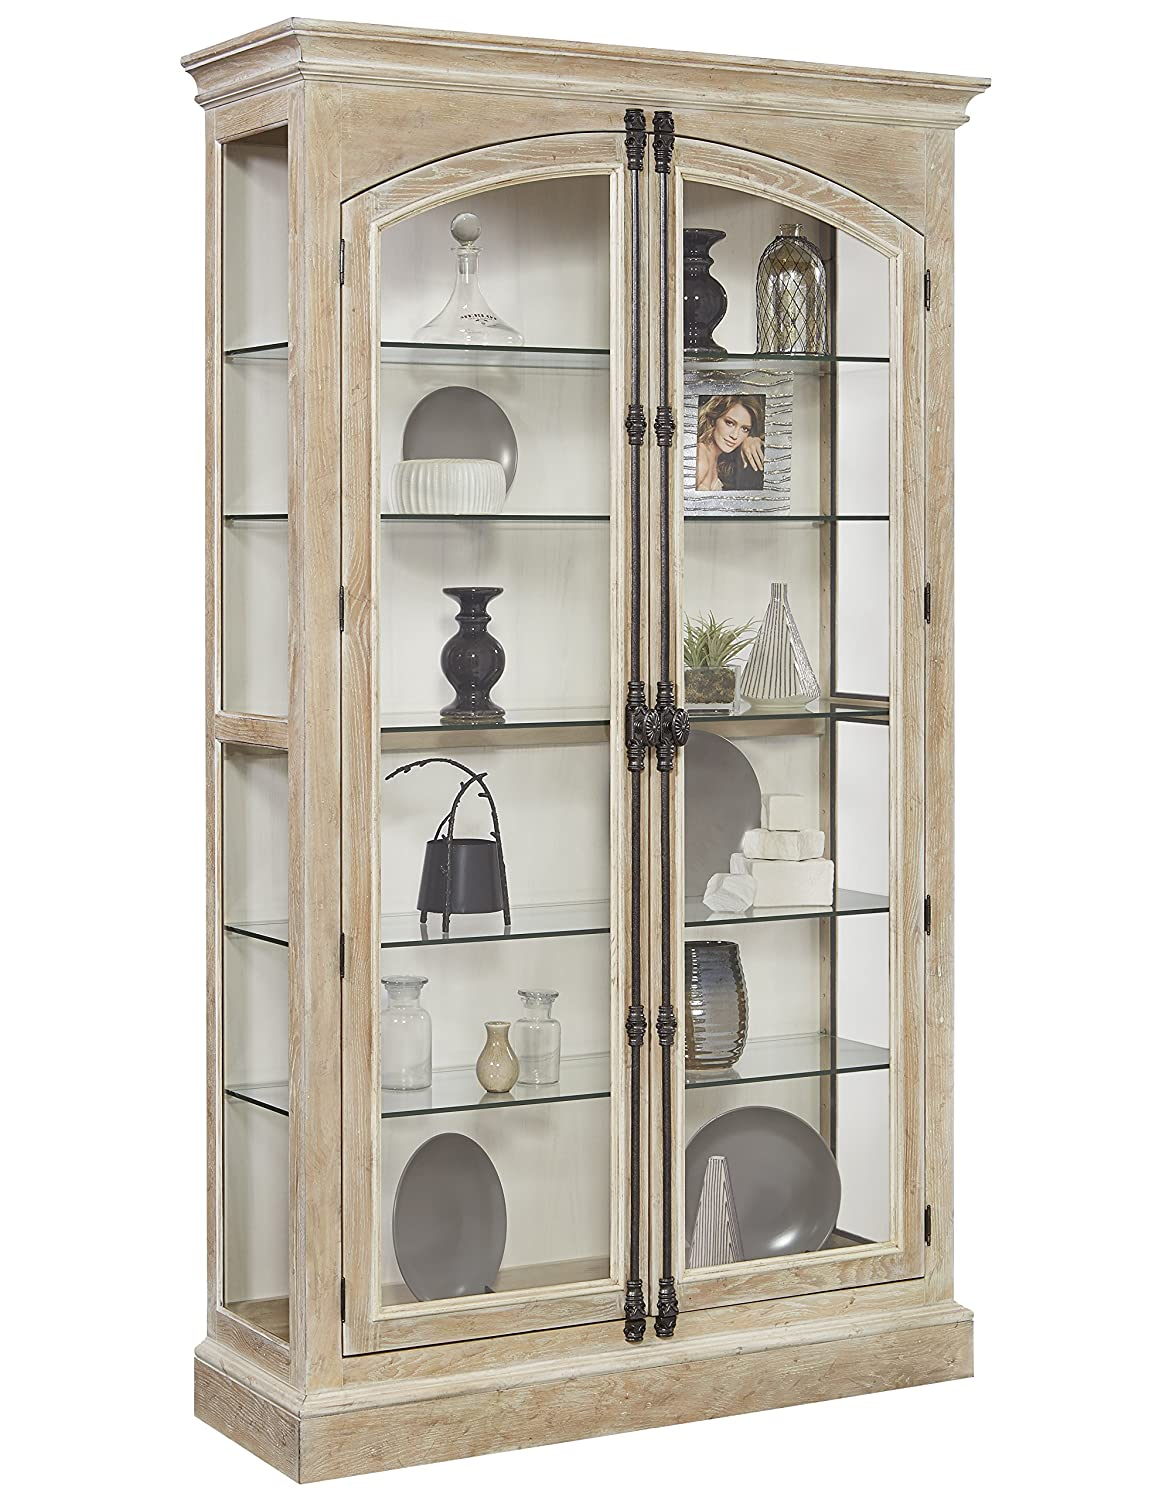 Pulaski Hailey Cremone Door Curio Cabinet, Brown